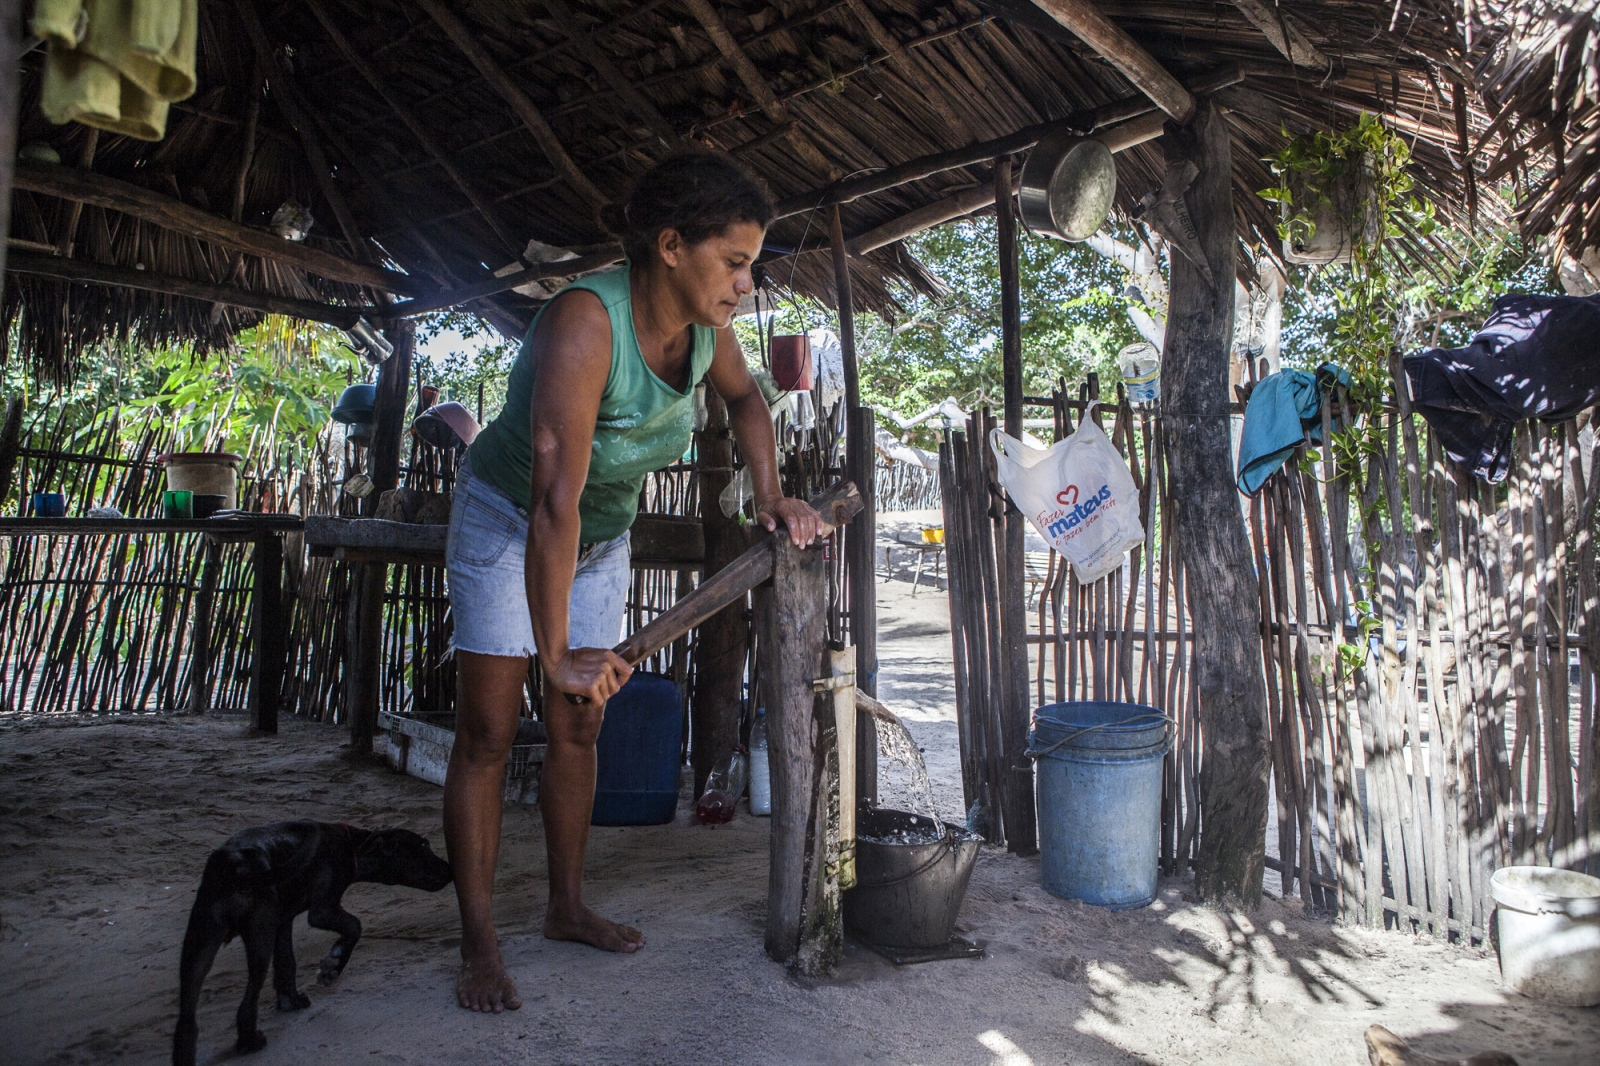 Aurideia Brito pumps water to prepare breakfast in her house in the Queimada dos Britos. Even during the harsh summers, they can pump water making it possible to live surrounded by desert.